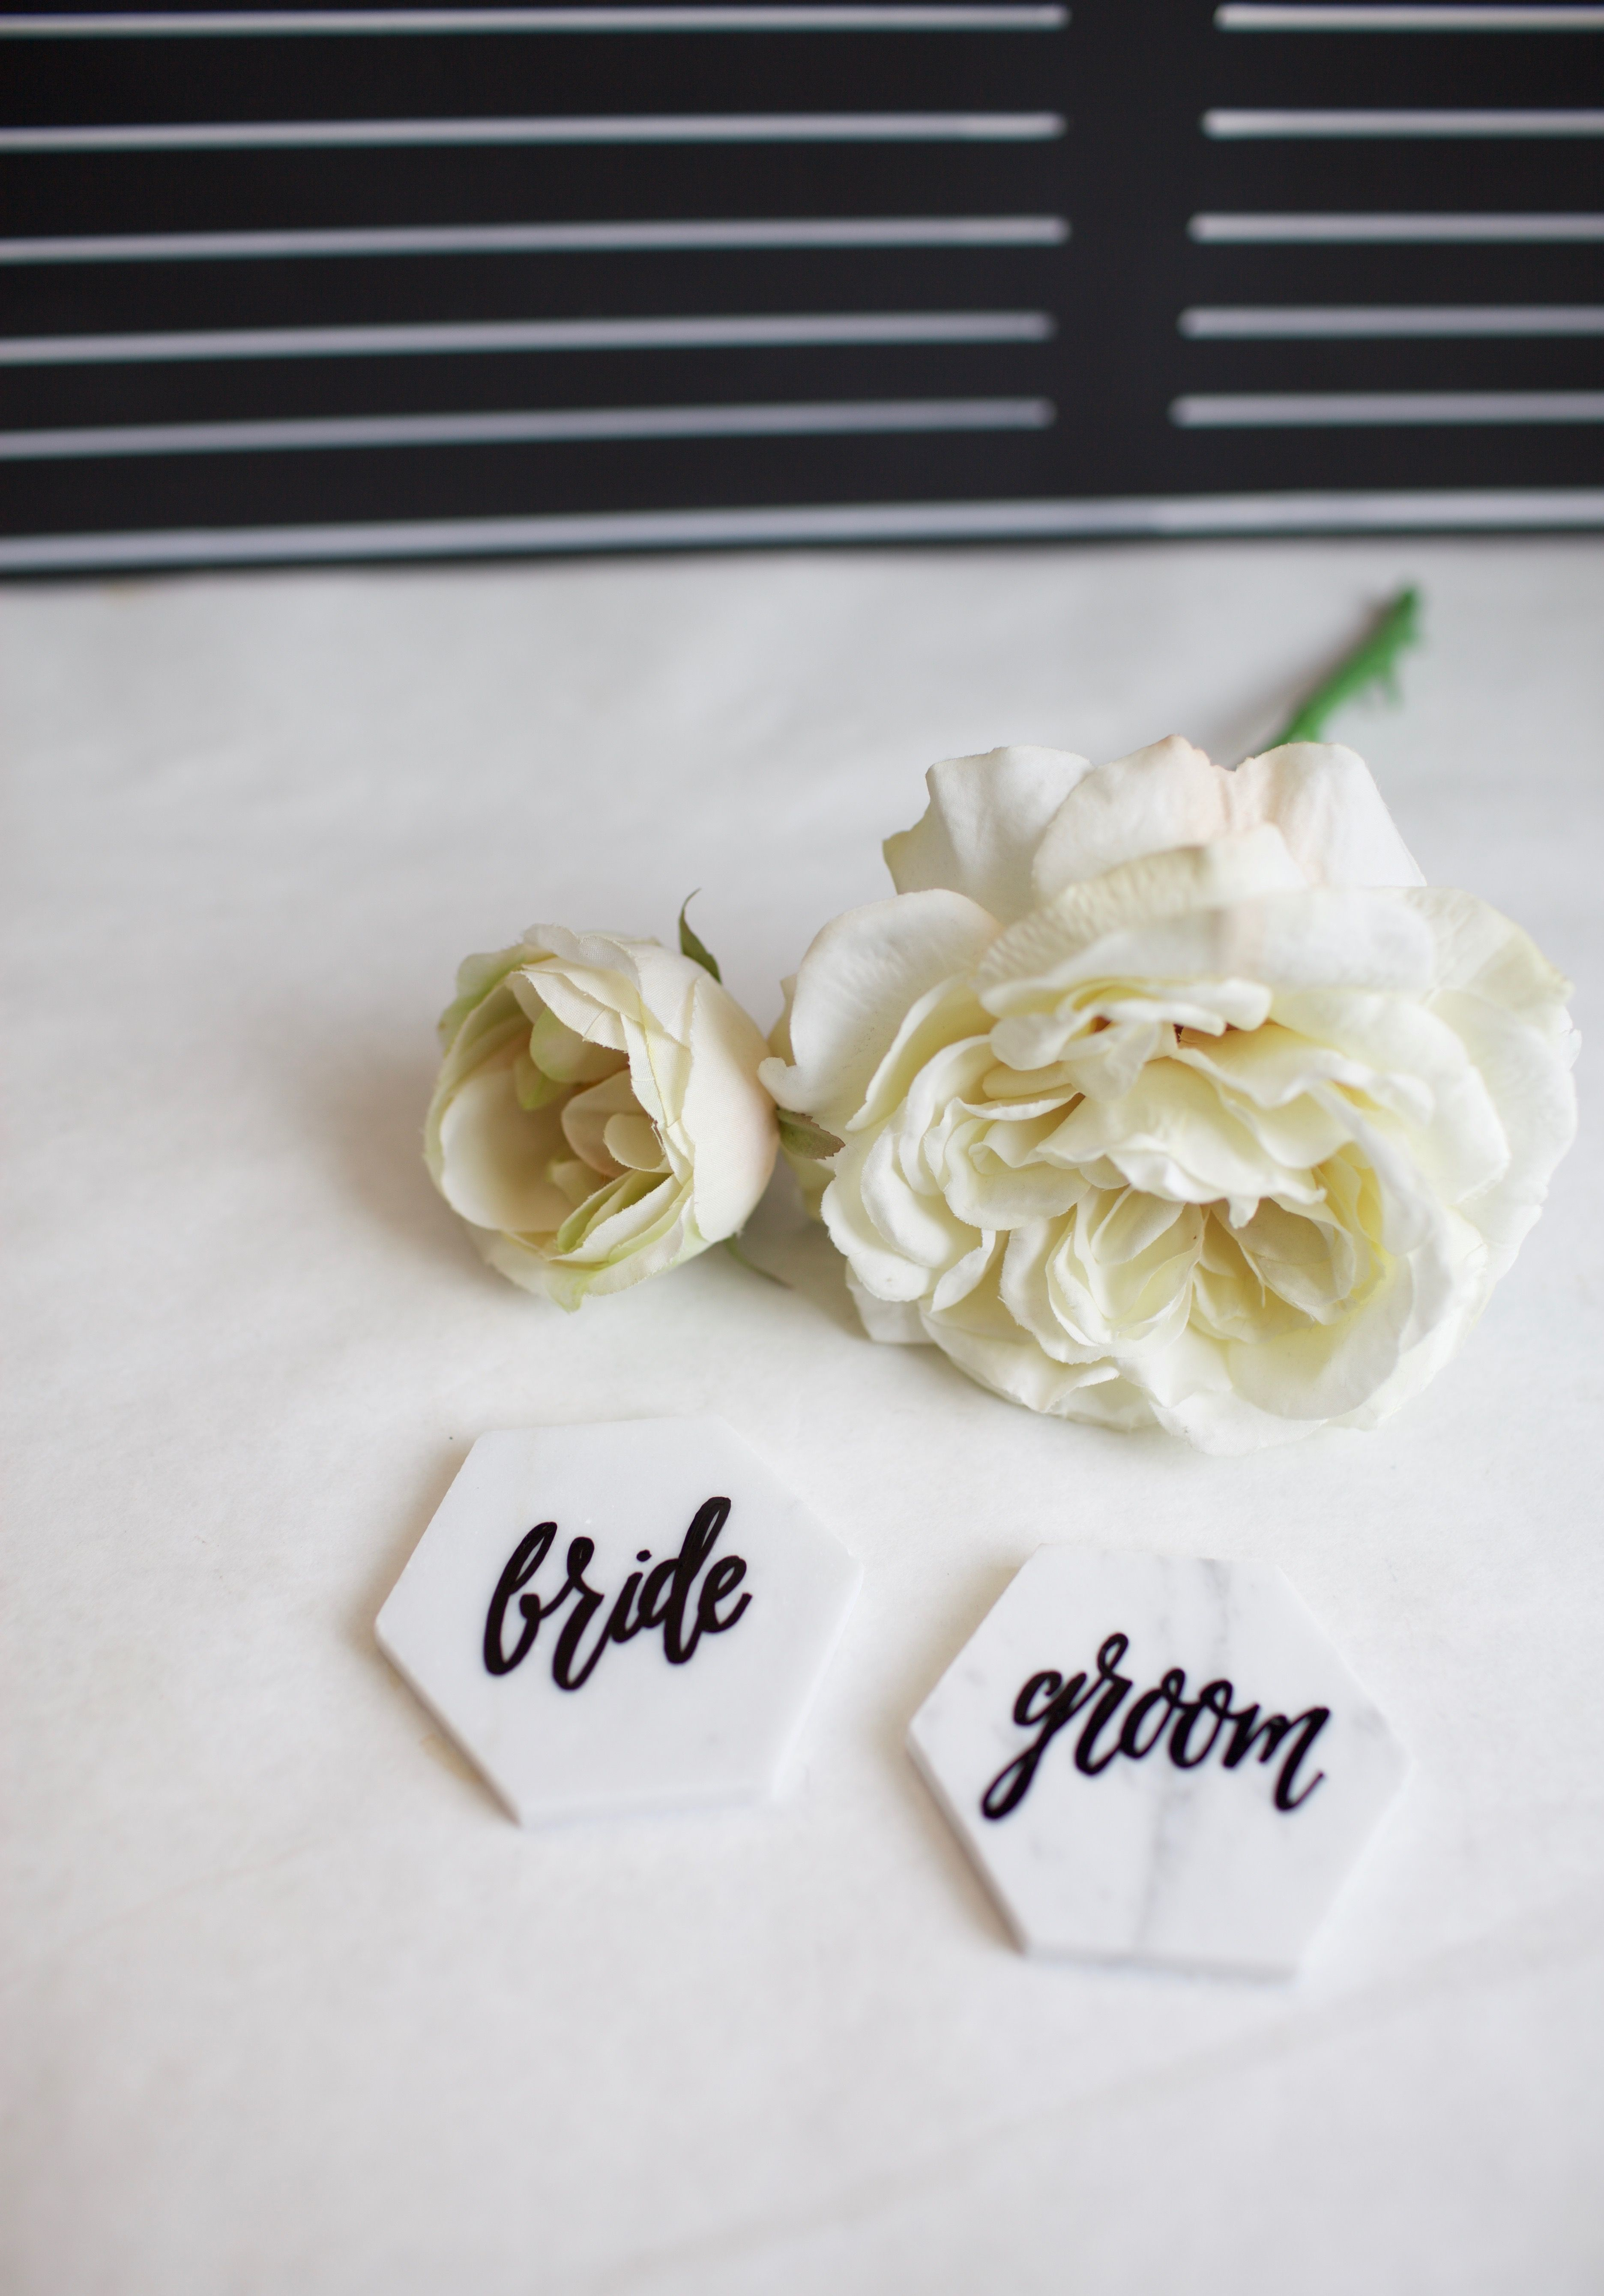 Hand painted bride and groom name plates on Carrara marble Marble ...